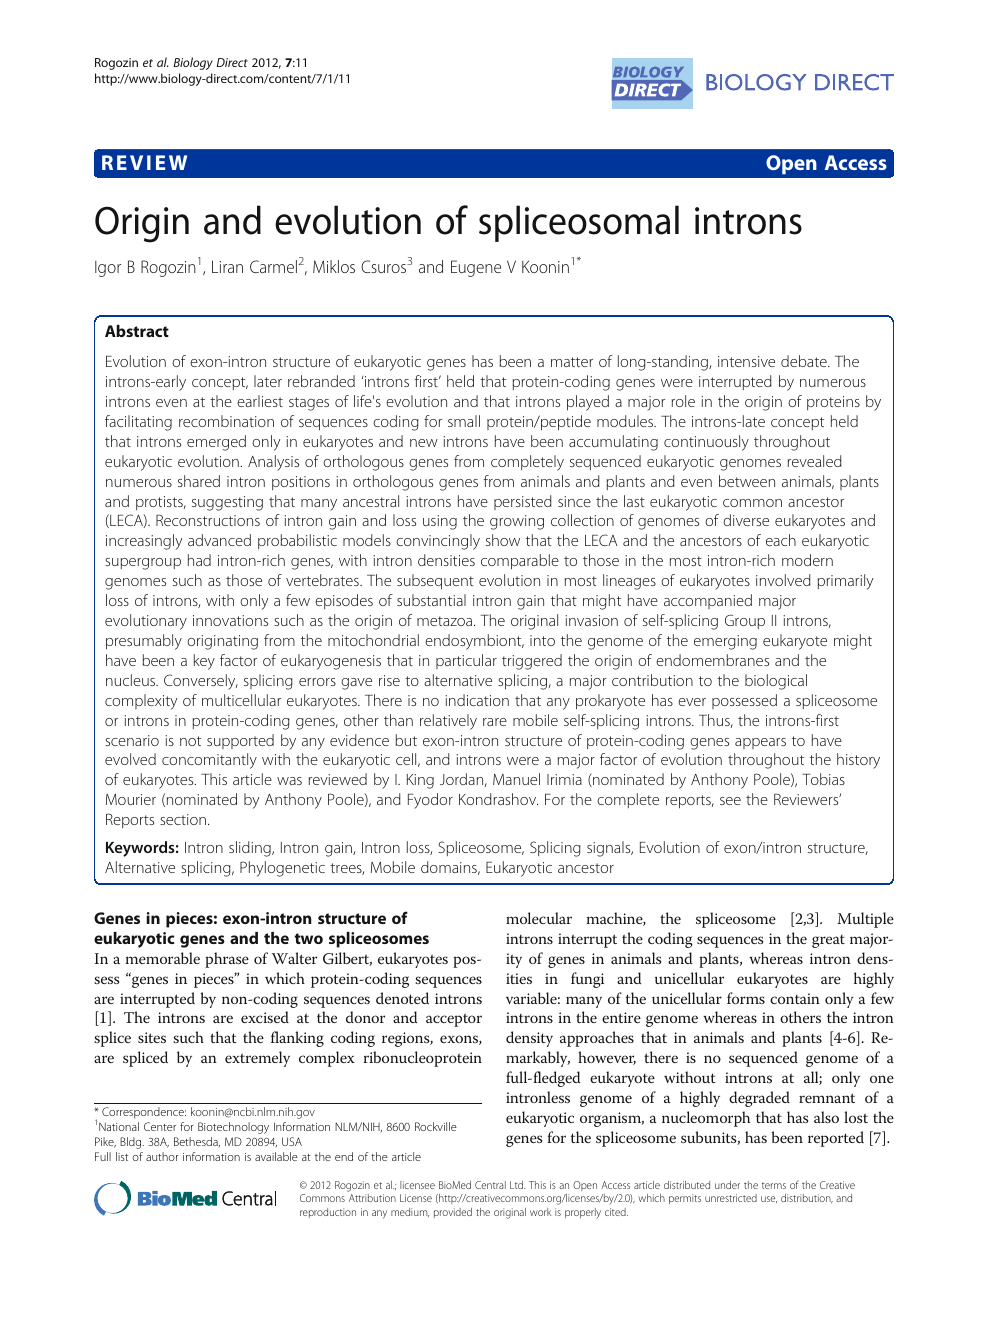 Origin and evolution of spliceosomal introns – topic of research